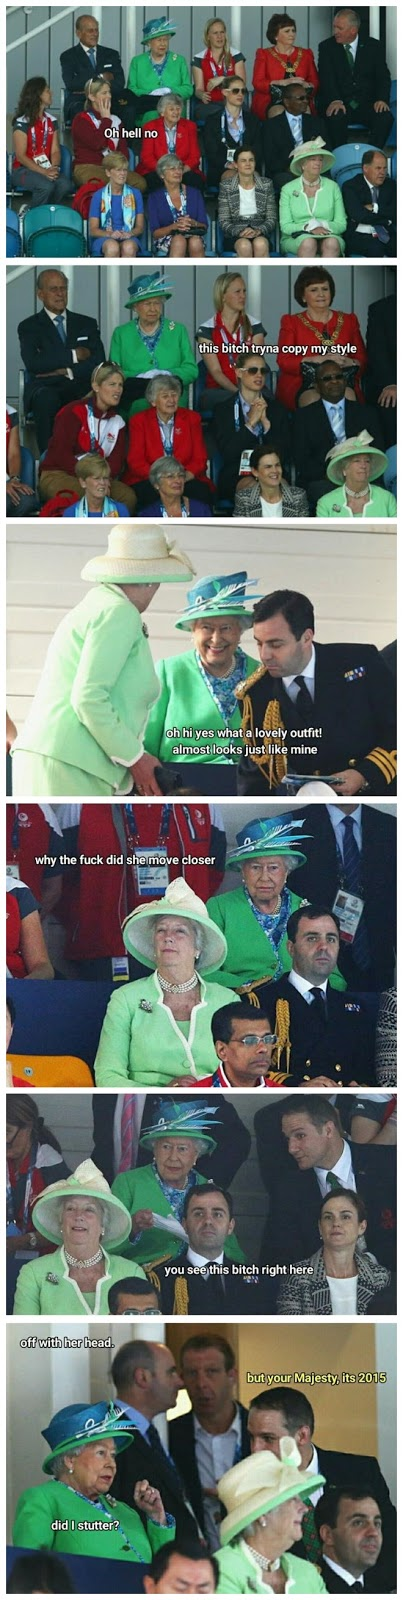 Funny Queen Elizabeth Green Outfit Meme Picture